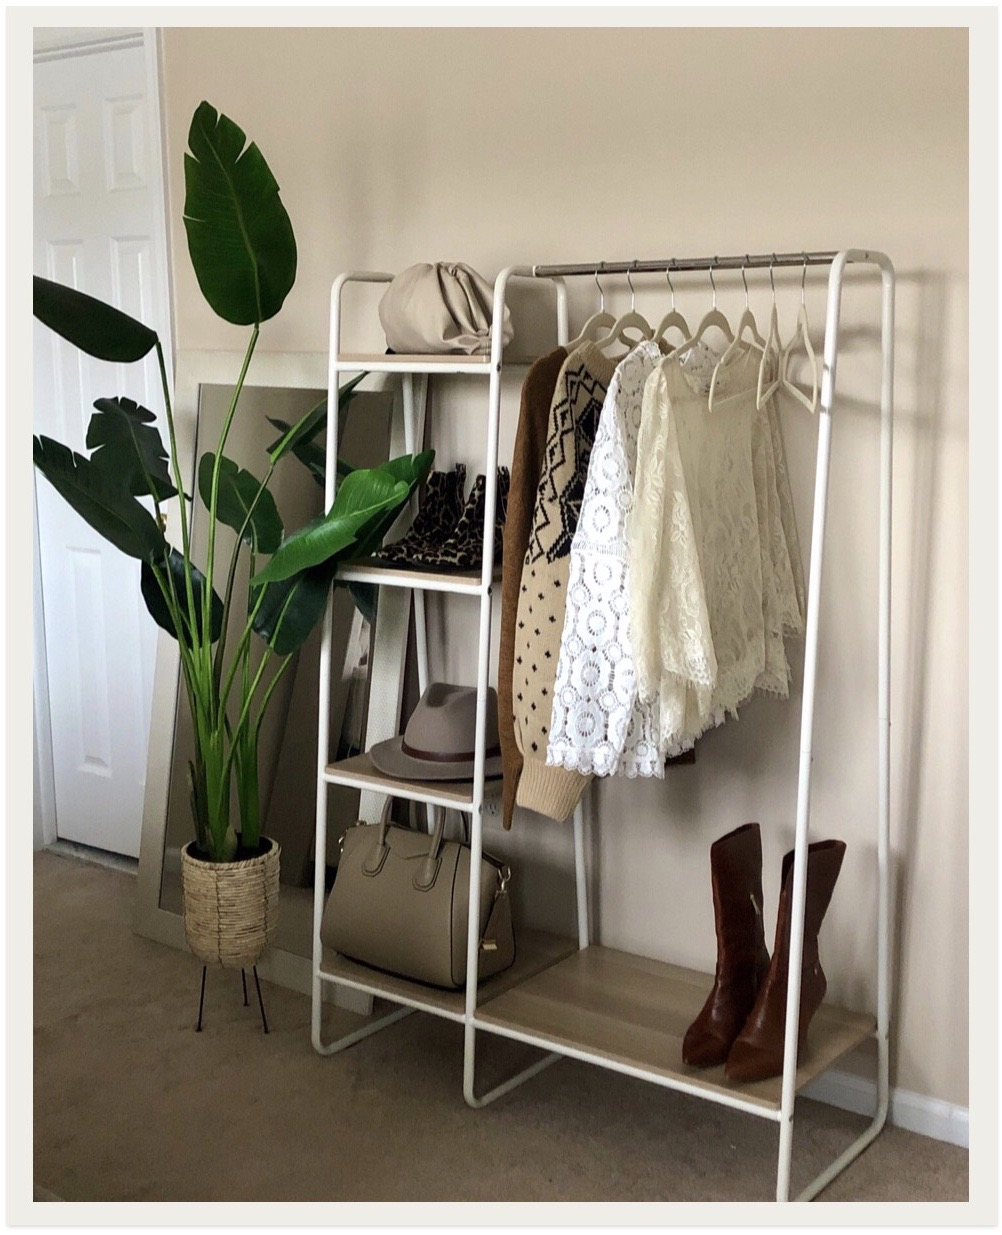 iris clothing rack from amazon styled by chichi from supplechic a fashion and lifestyle blog based in baltimore